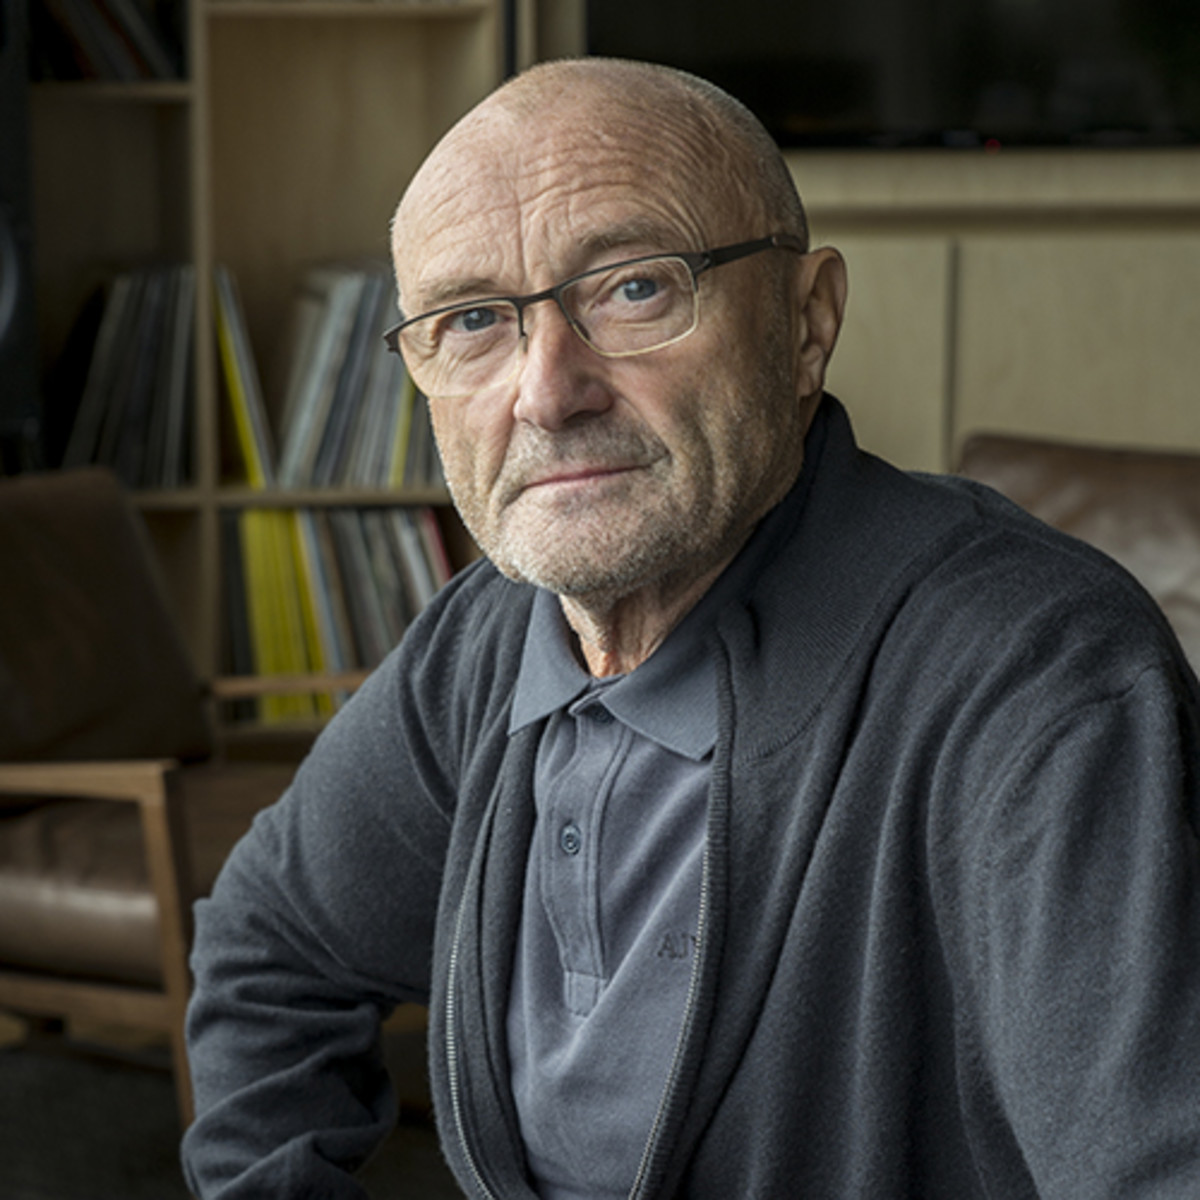 Phil Collins Phone number, Email Id, Fanmail, Instagram, Tiktok, and Contact Details